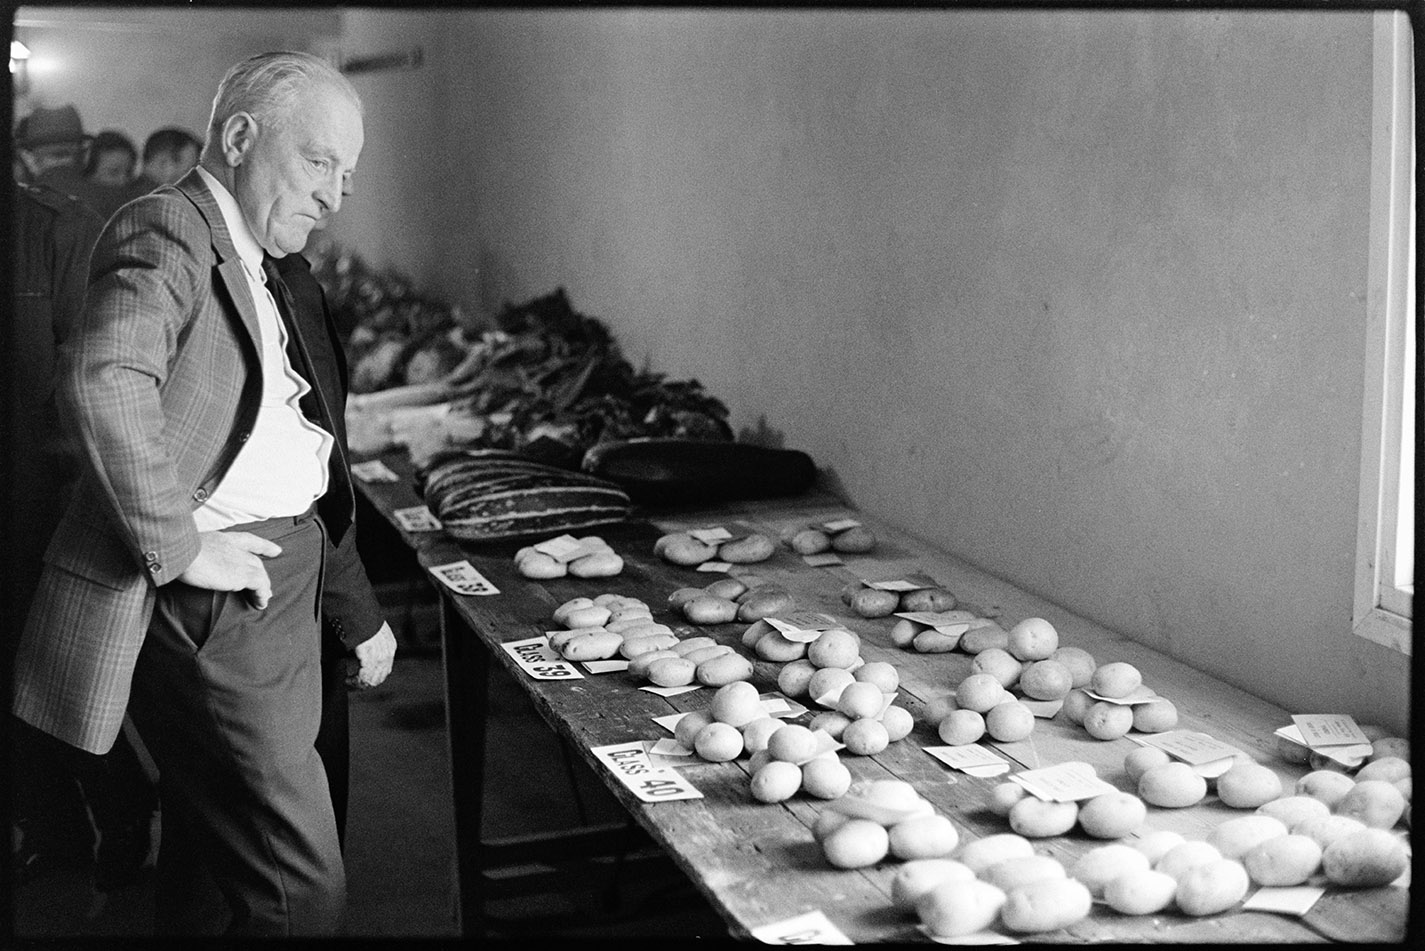 Man looking at potatoes, flower show, St Giles in the Wood, 26 October 1974. Documentary photograph by James Ravilious for the Beaford Archive © Beaford Arts